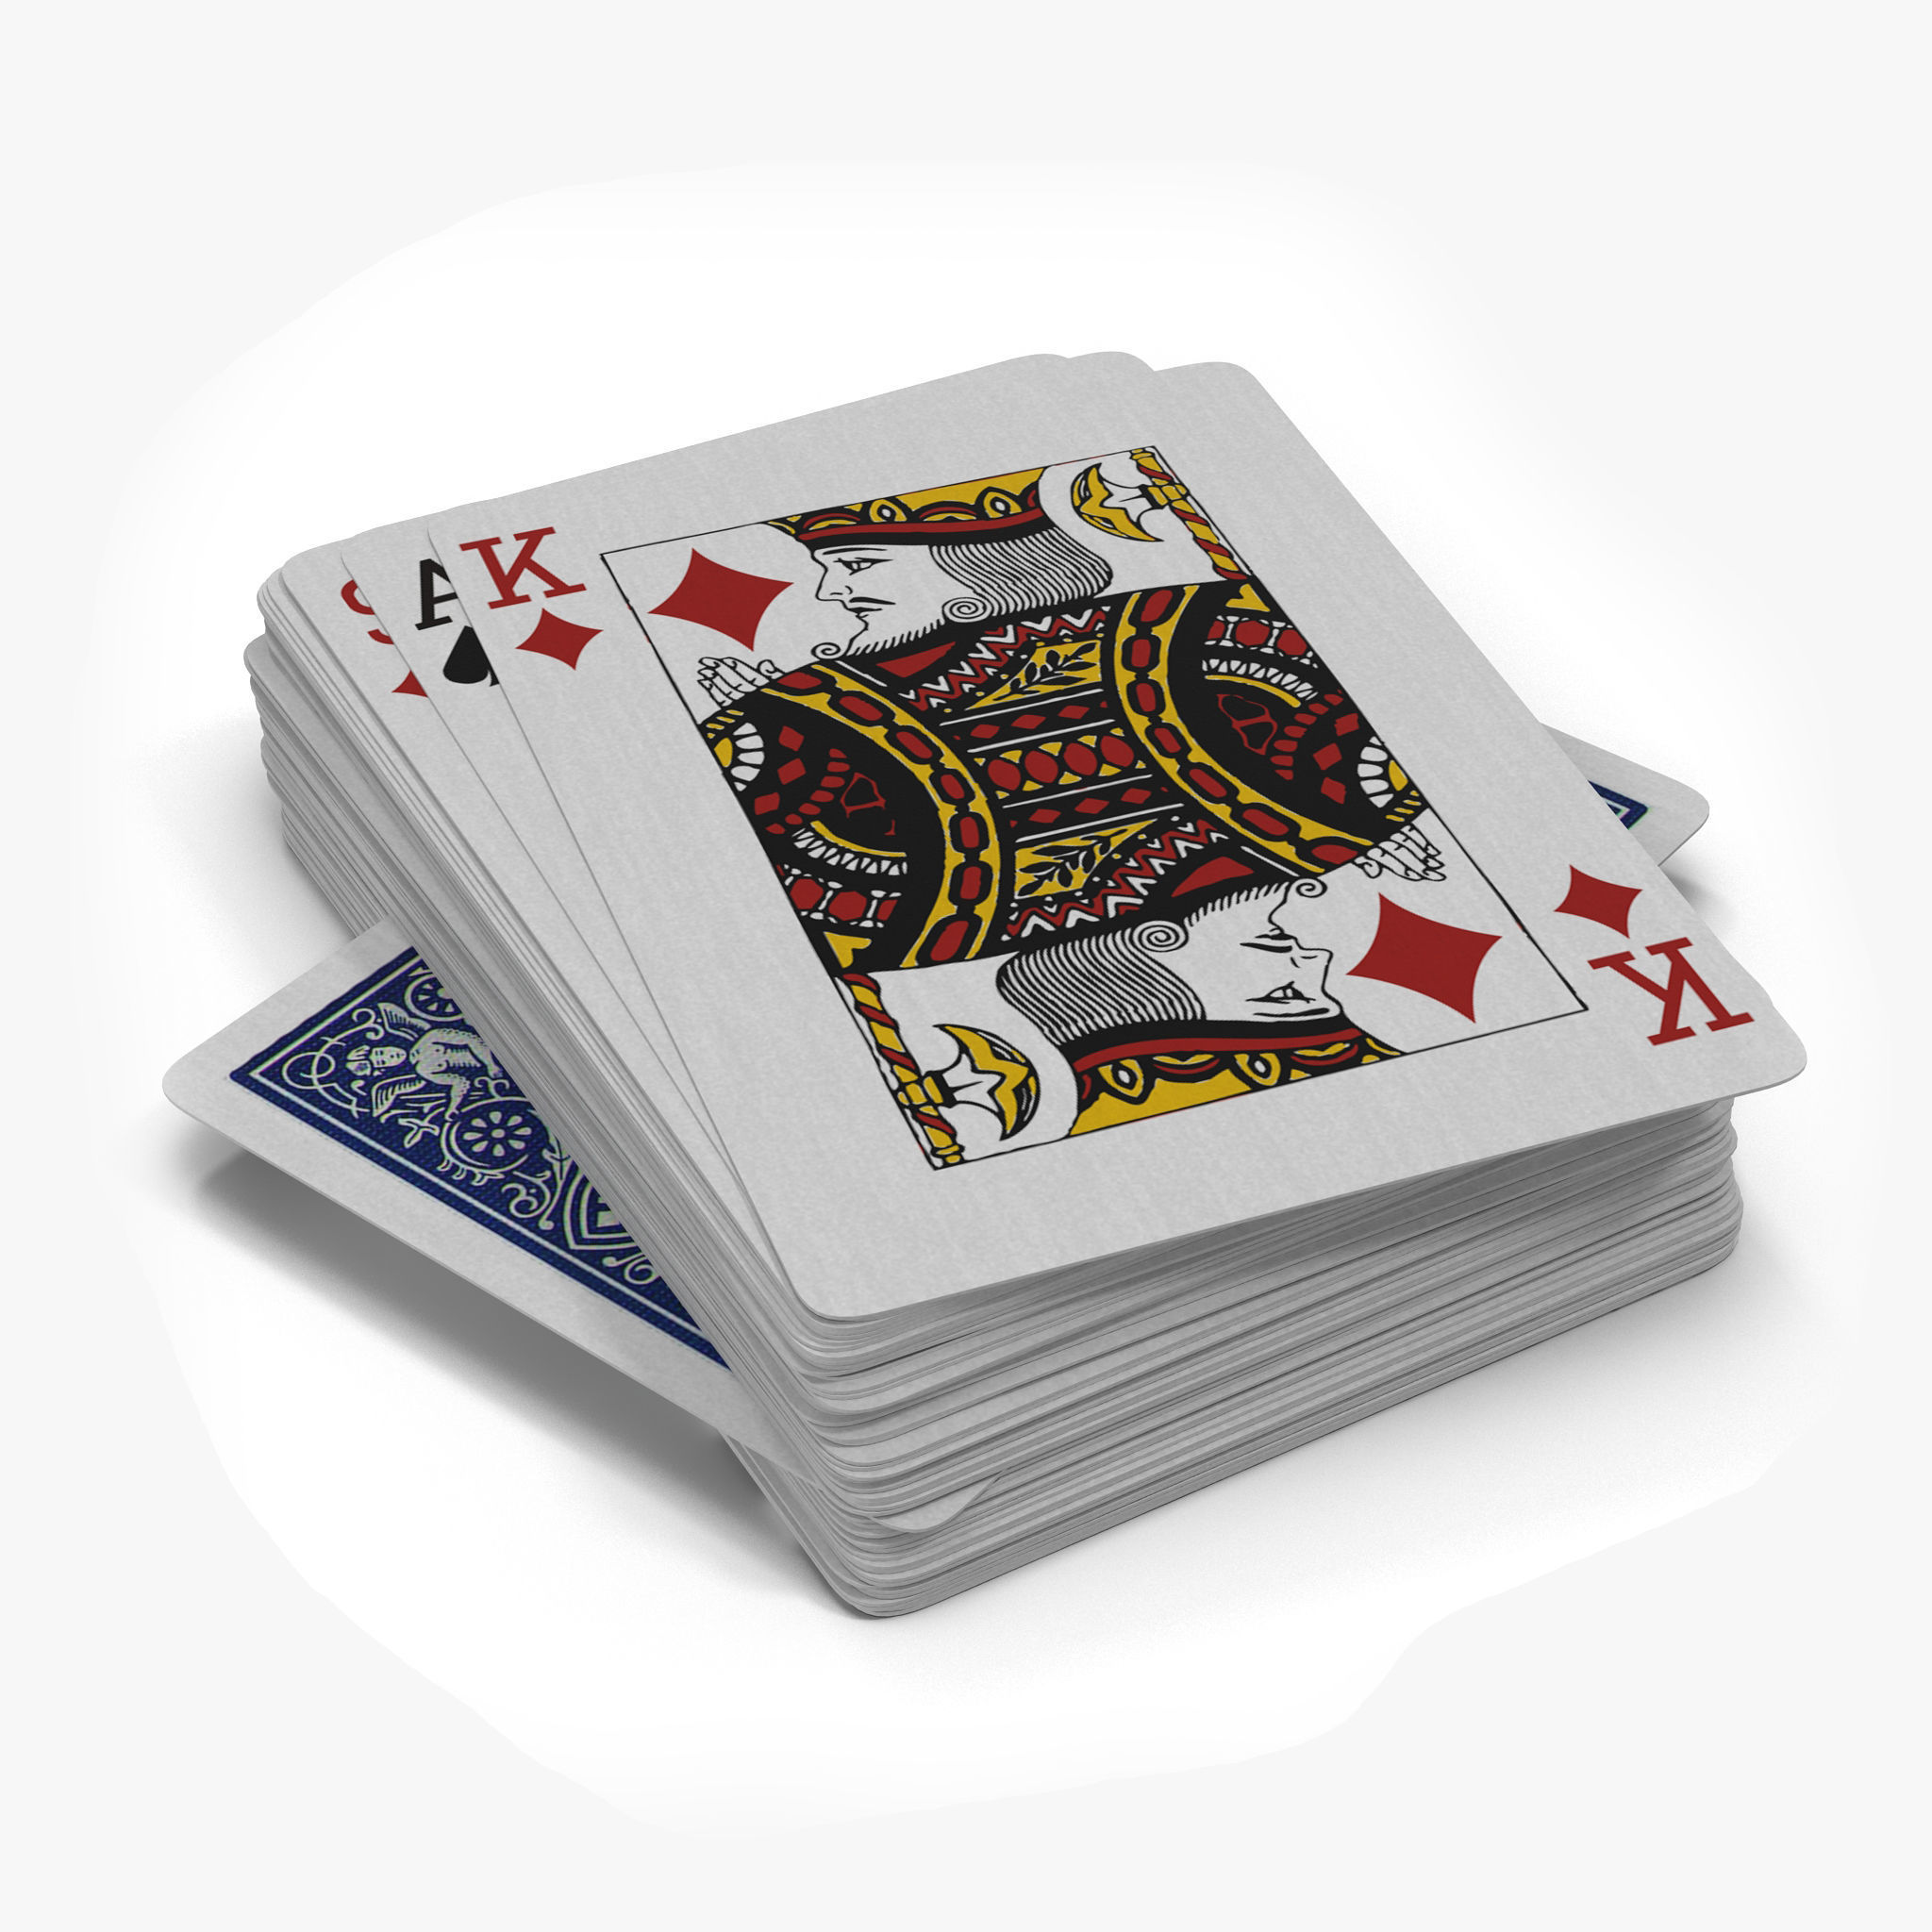 54 Playing Cards